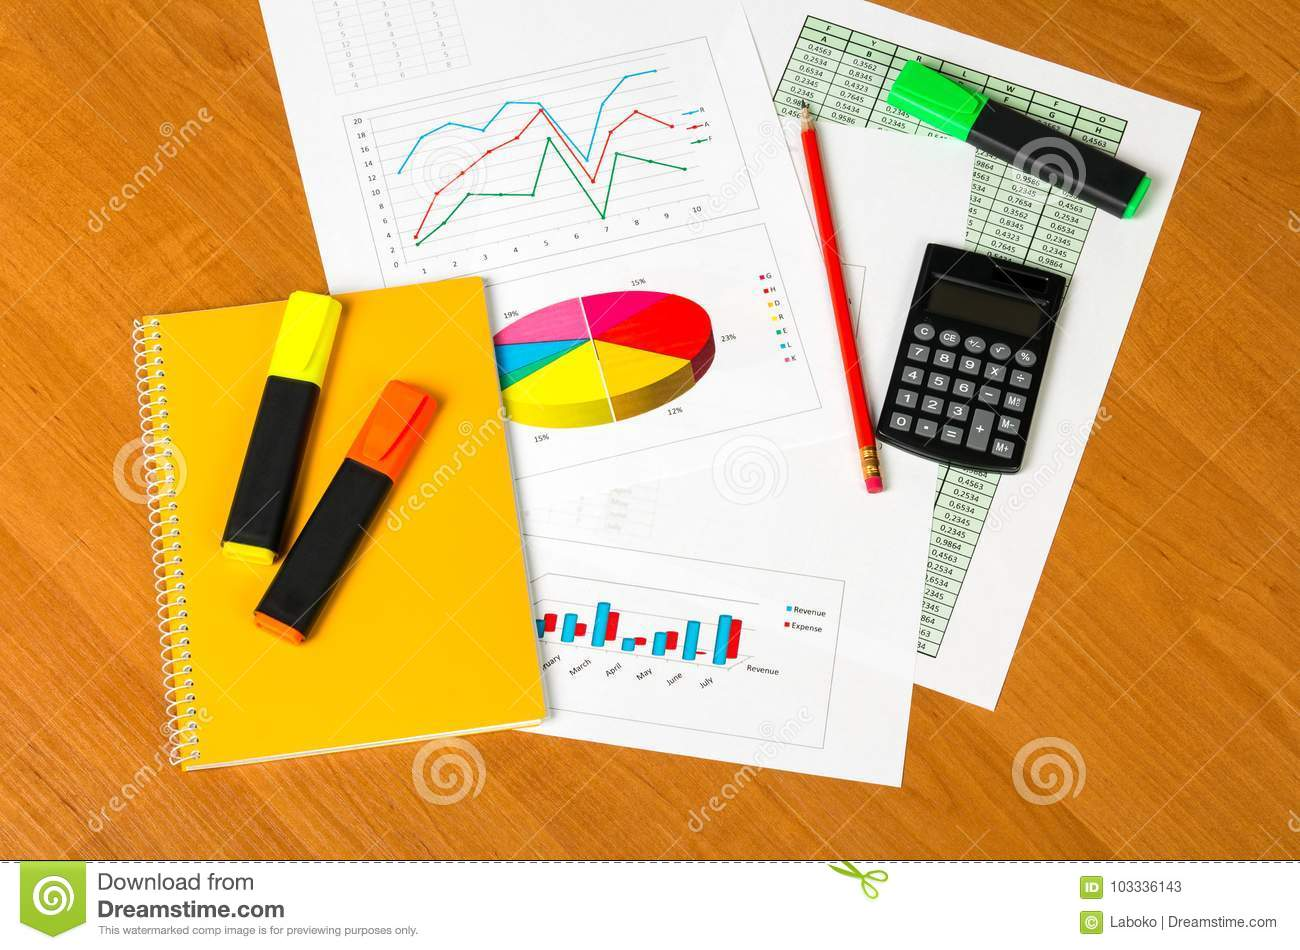 Calculator, Notepad, markers, sheets of paper with accounts and